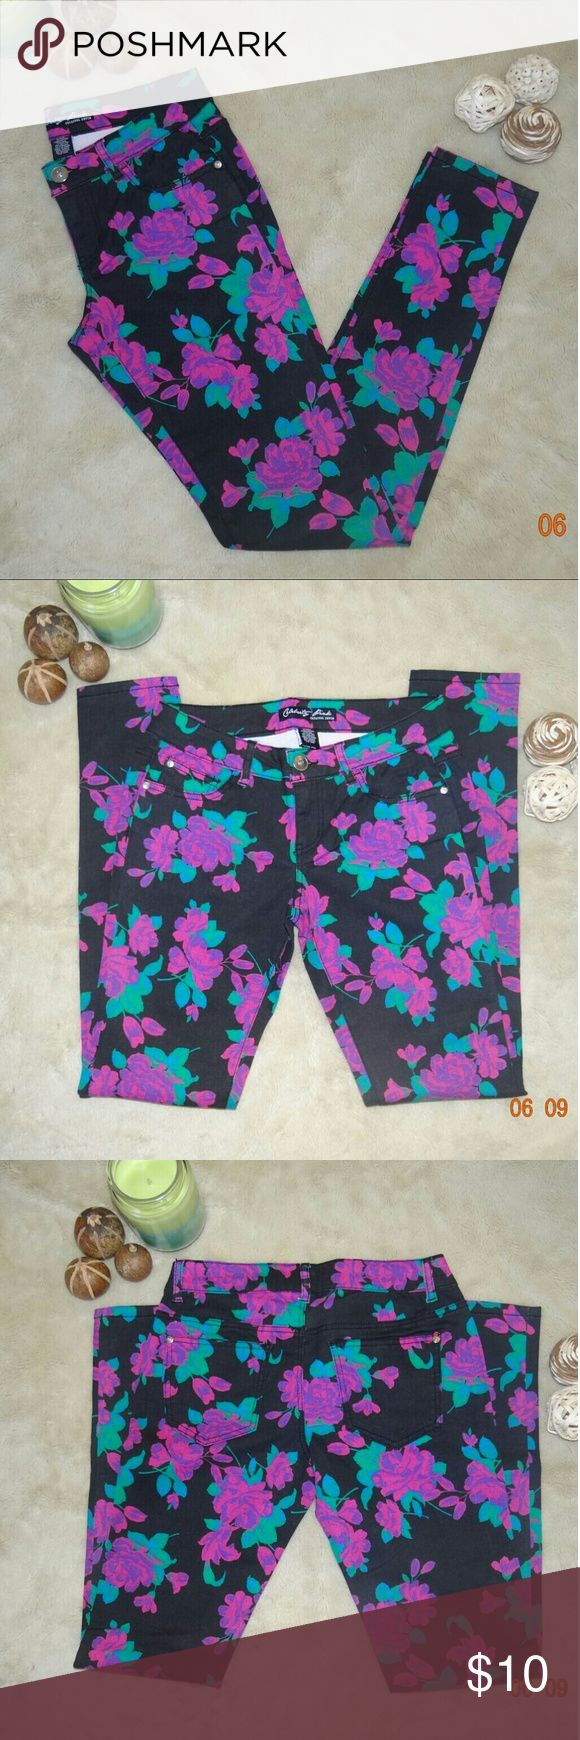 Celebrity Pink Black Floral Pants This item is brand new. Celebrity Pink black floral print skinny pants in woman's size 5. Please note camera had difficulty picking up true colors its pink and purple floral. Very cute alternative to the black skinny pants. Celebrity Pink Pants Skinny